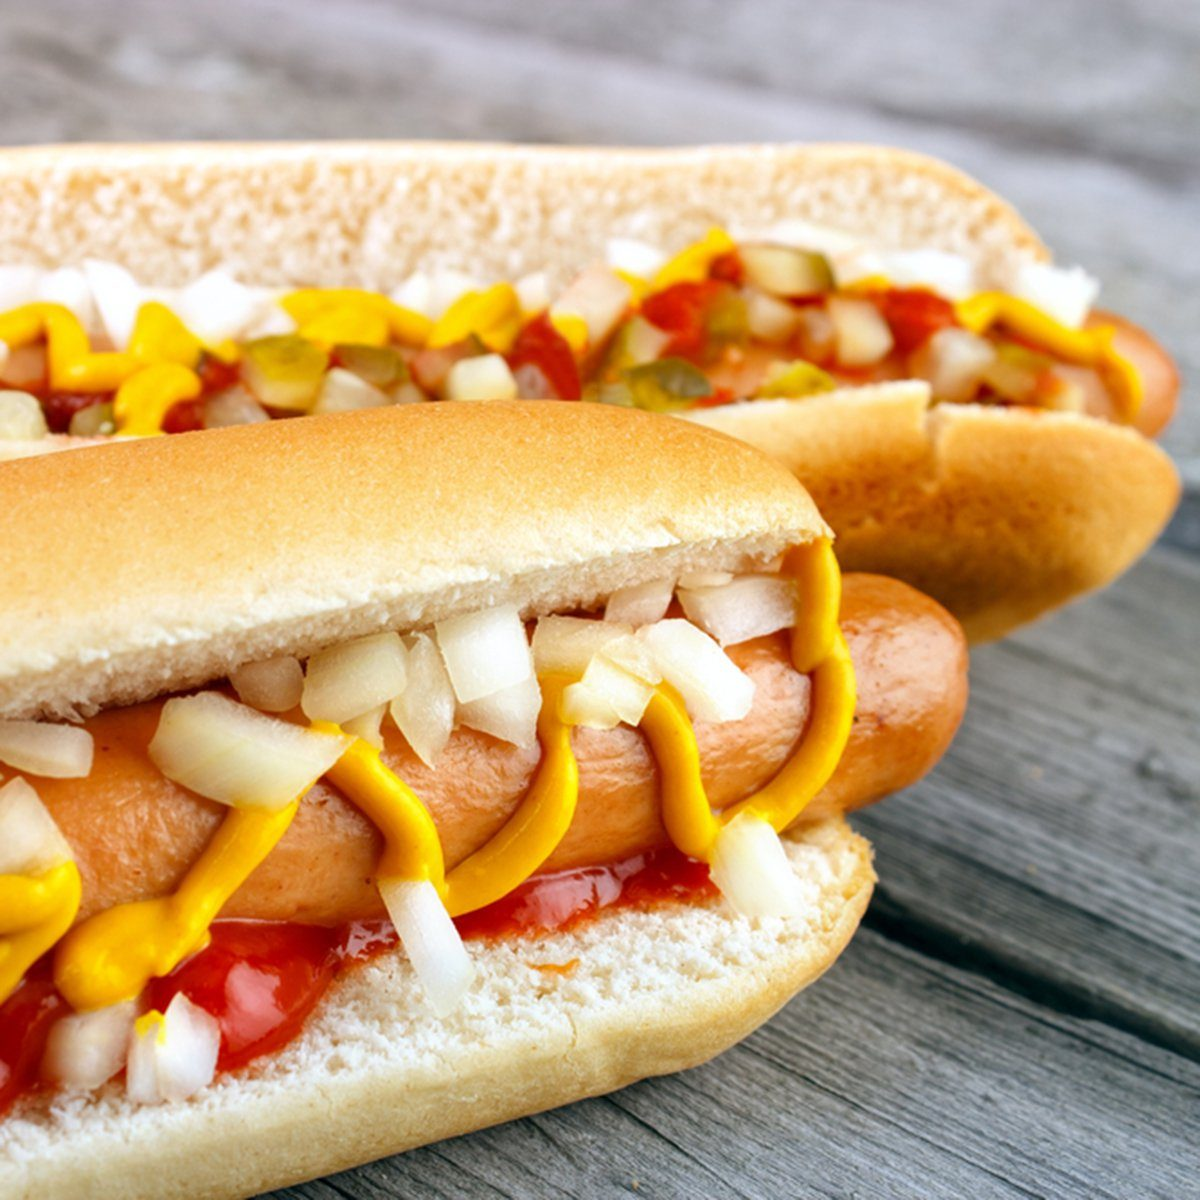 Two hot dogs with ketchup closeup , yellow mustard and onion on gray wooden surface; Shutterstock ID 263142953; Job (TFH, TOH, RD, BNB, CWM, CM): TOH